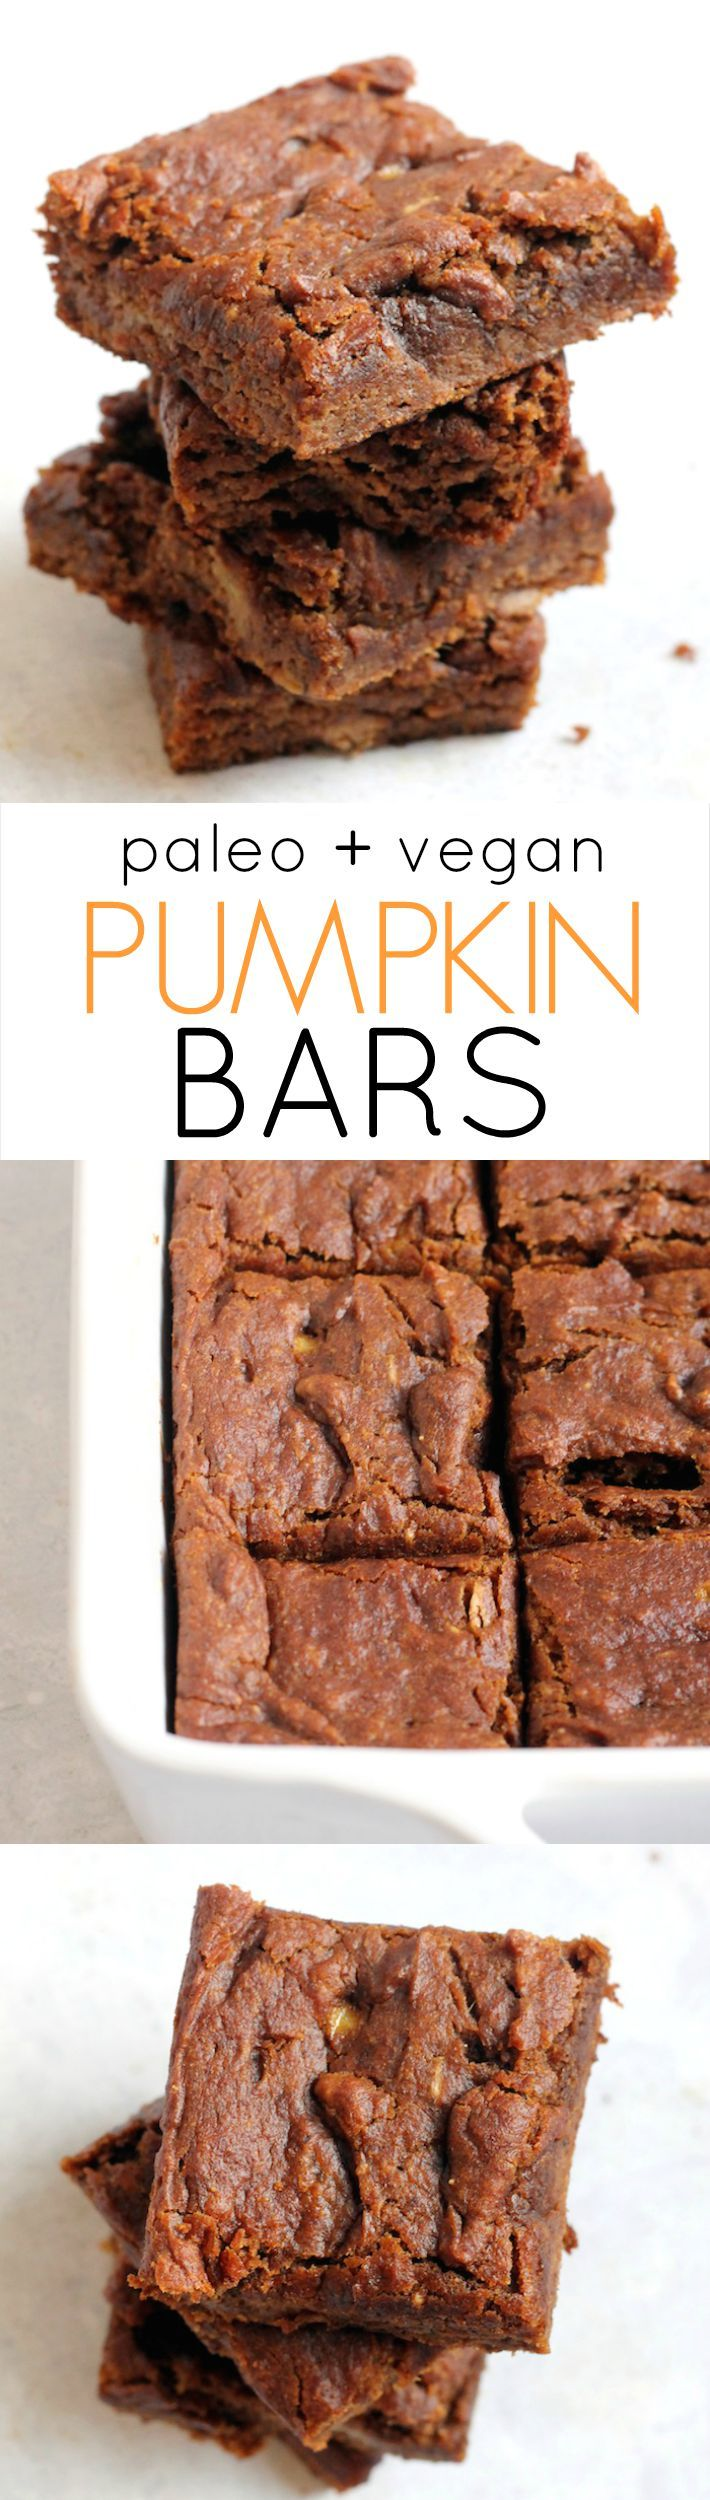 The ultimate pumpkin bars paleoblueprint recipes pinterest the ultimate pumpkin bars aloadofball Gallery